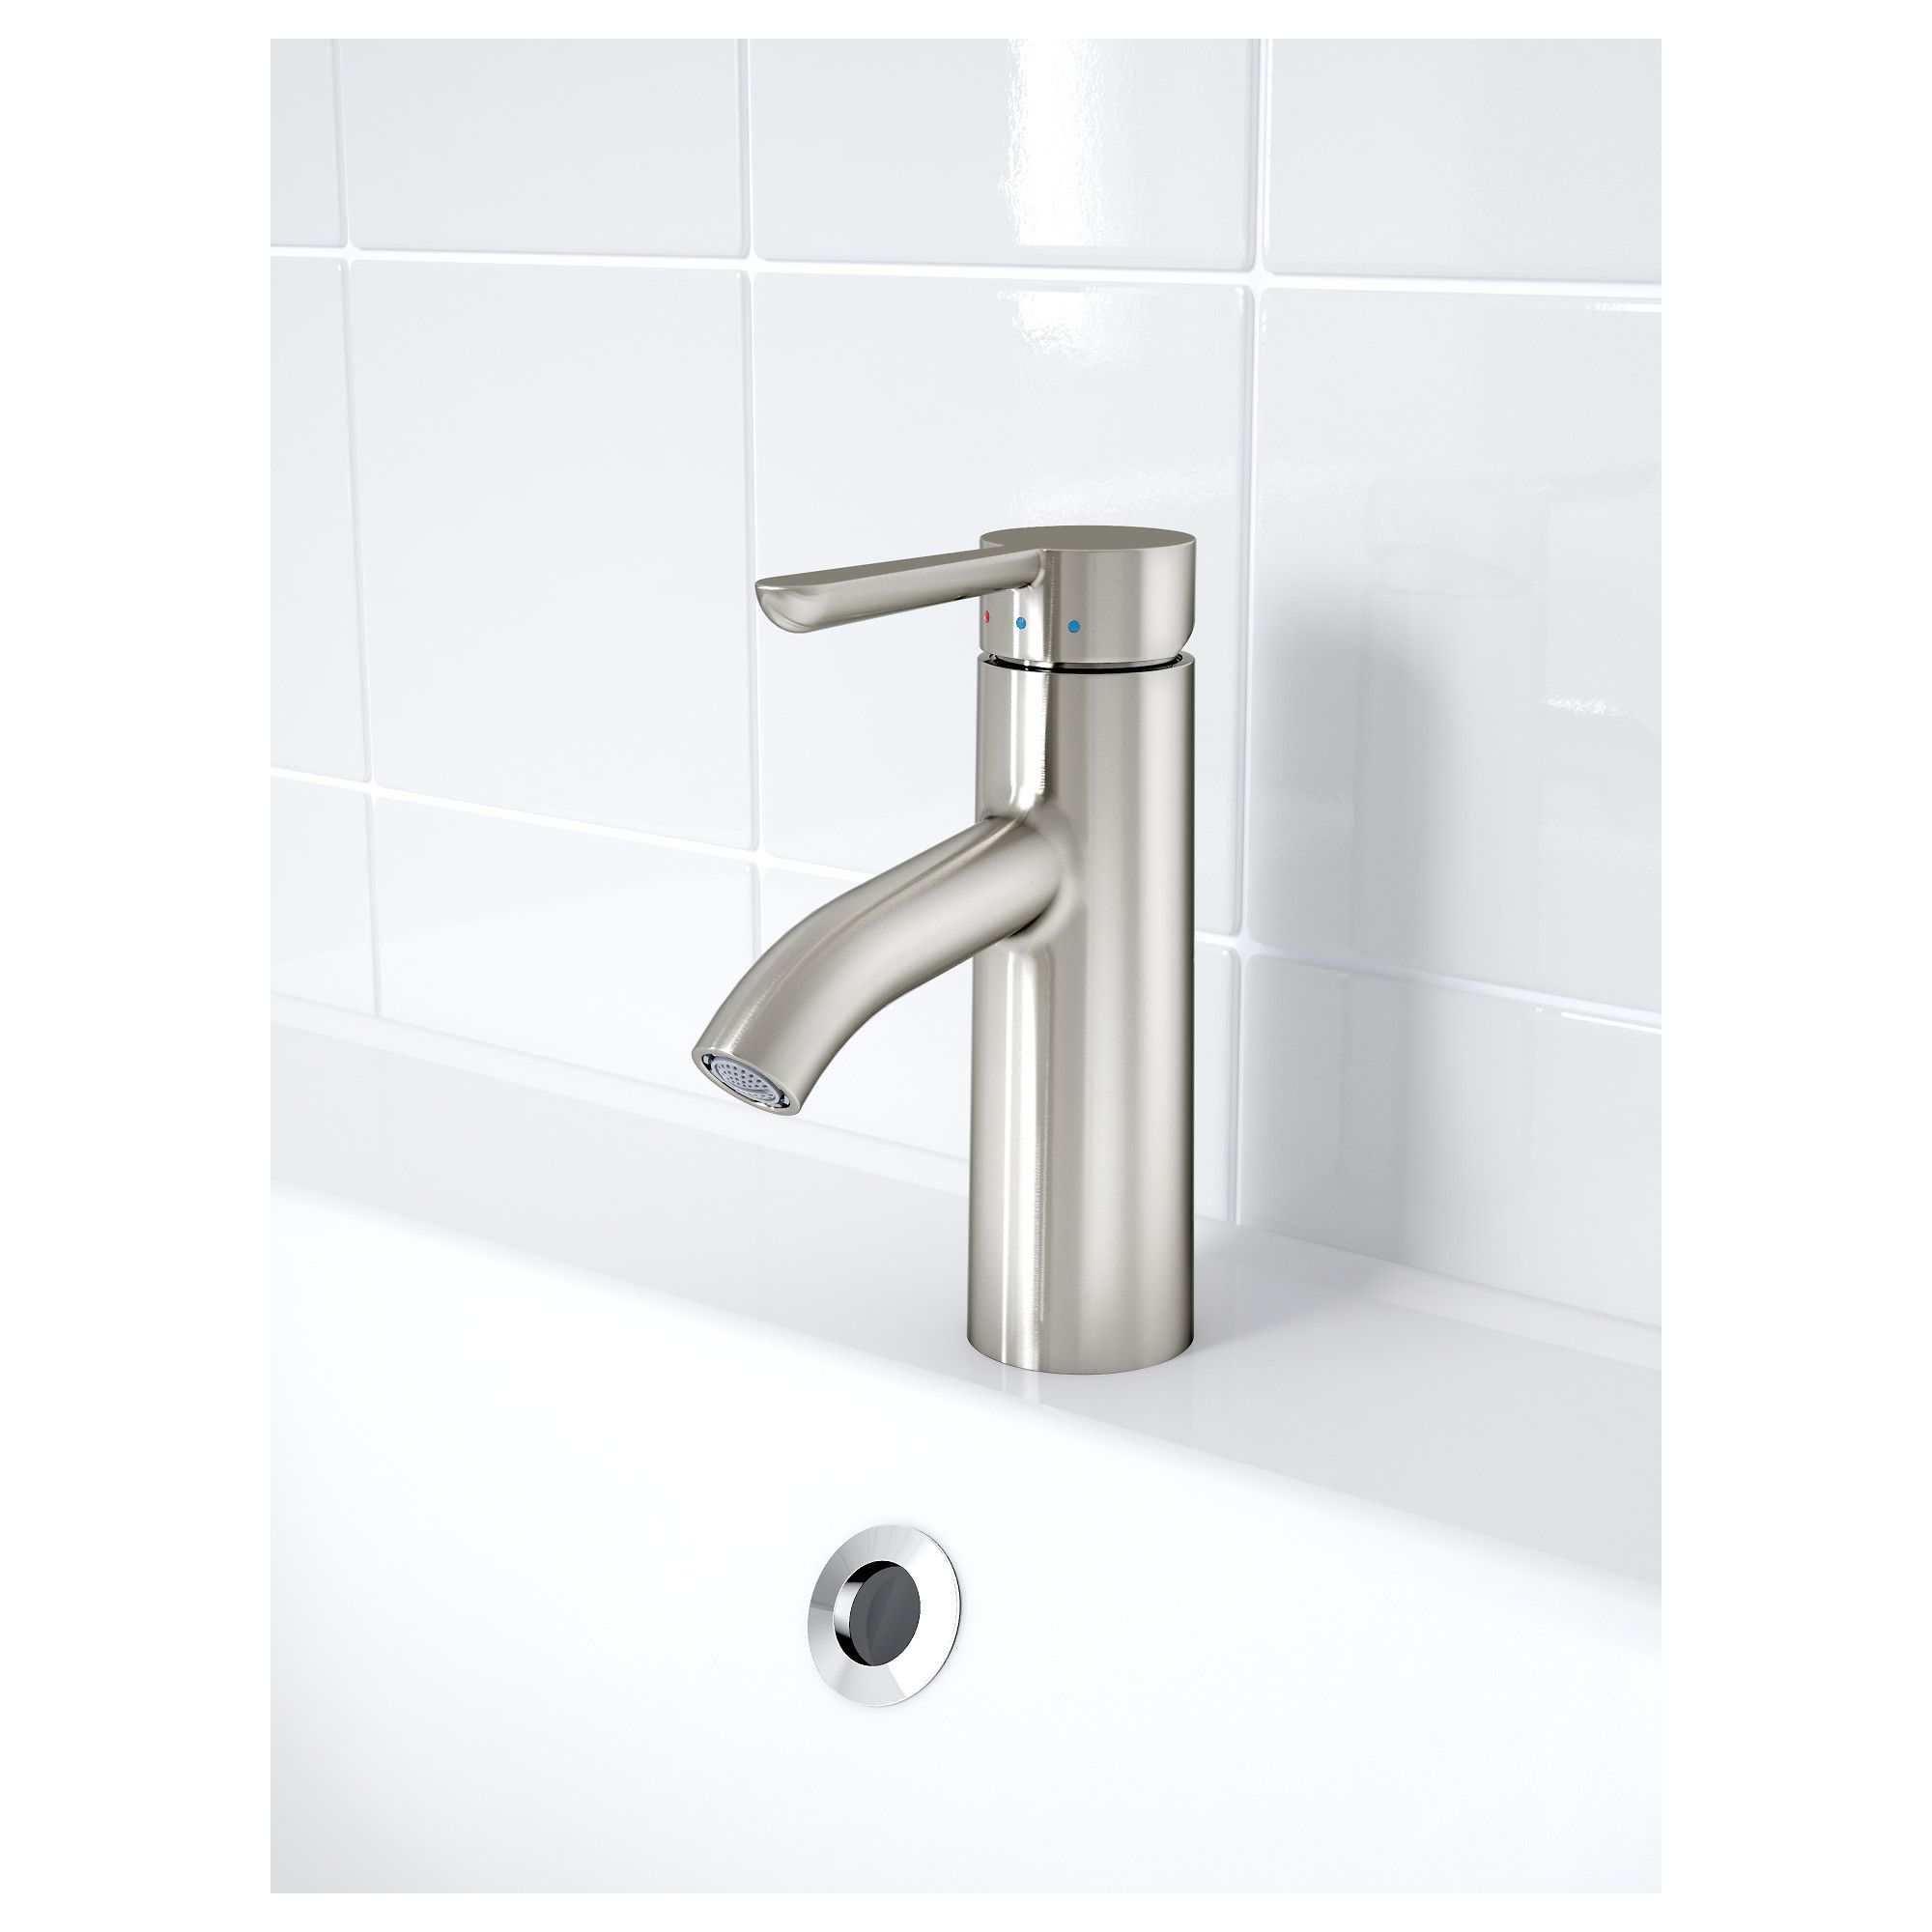 ikea dalskr bathroom faucet stainless steel color - Ikea Bathroom Faucets